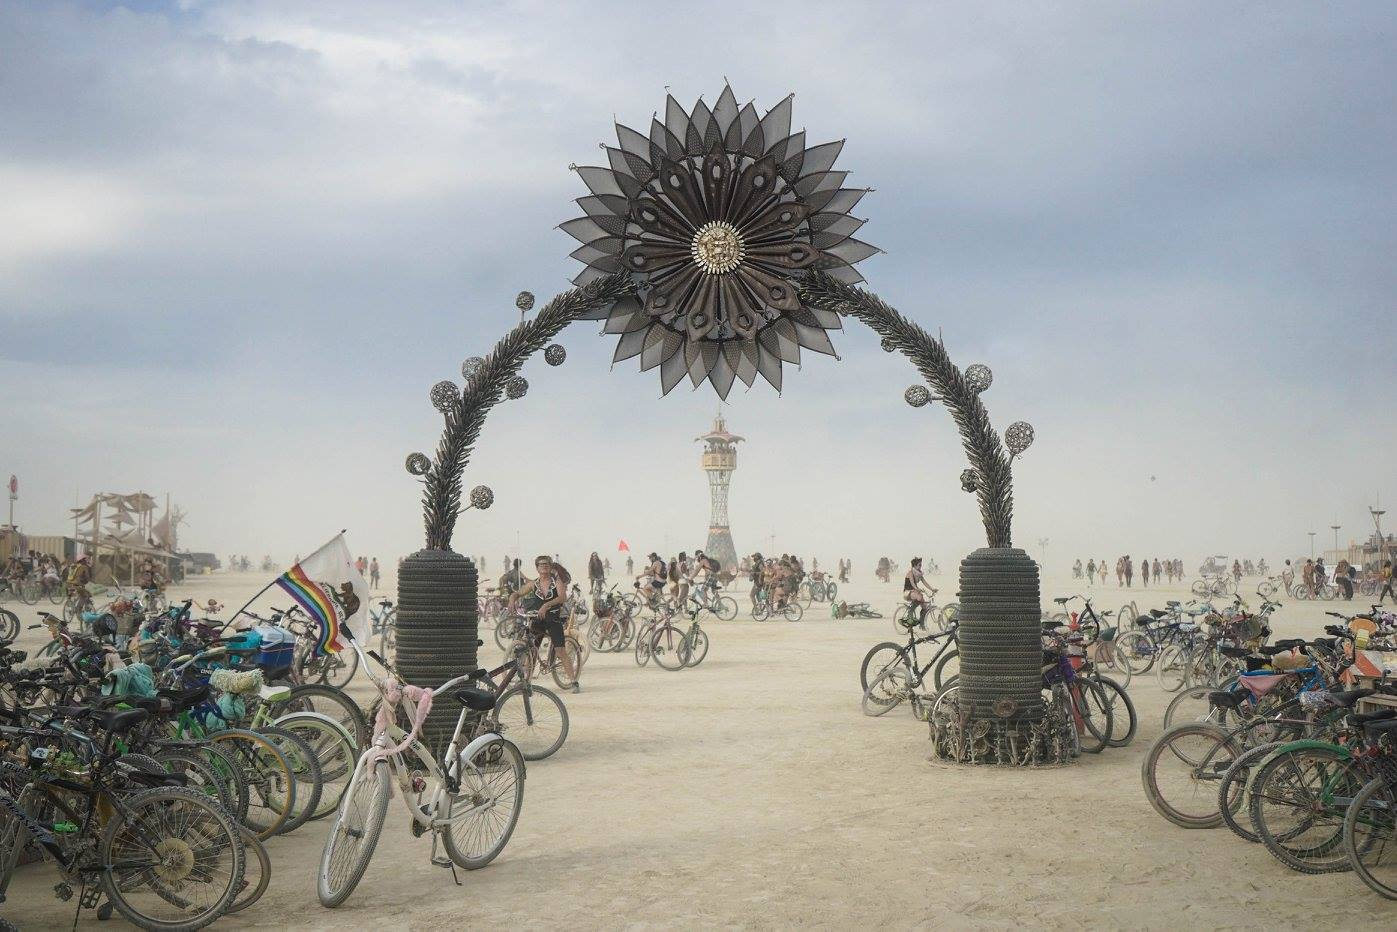 Victor-Habchy_Burining-Man-2014_welcom-to-the-Burning-Man